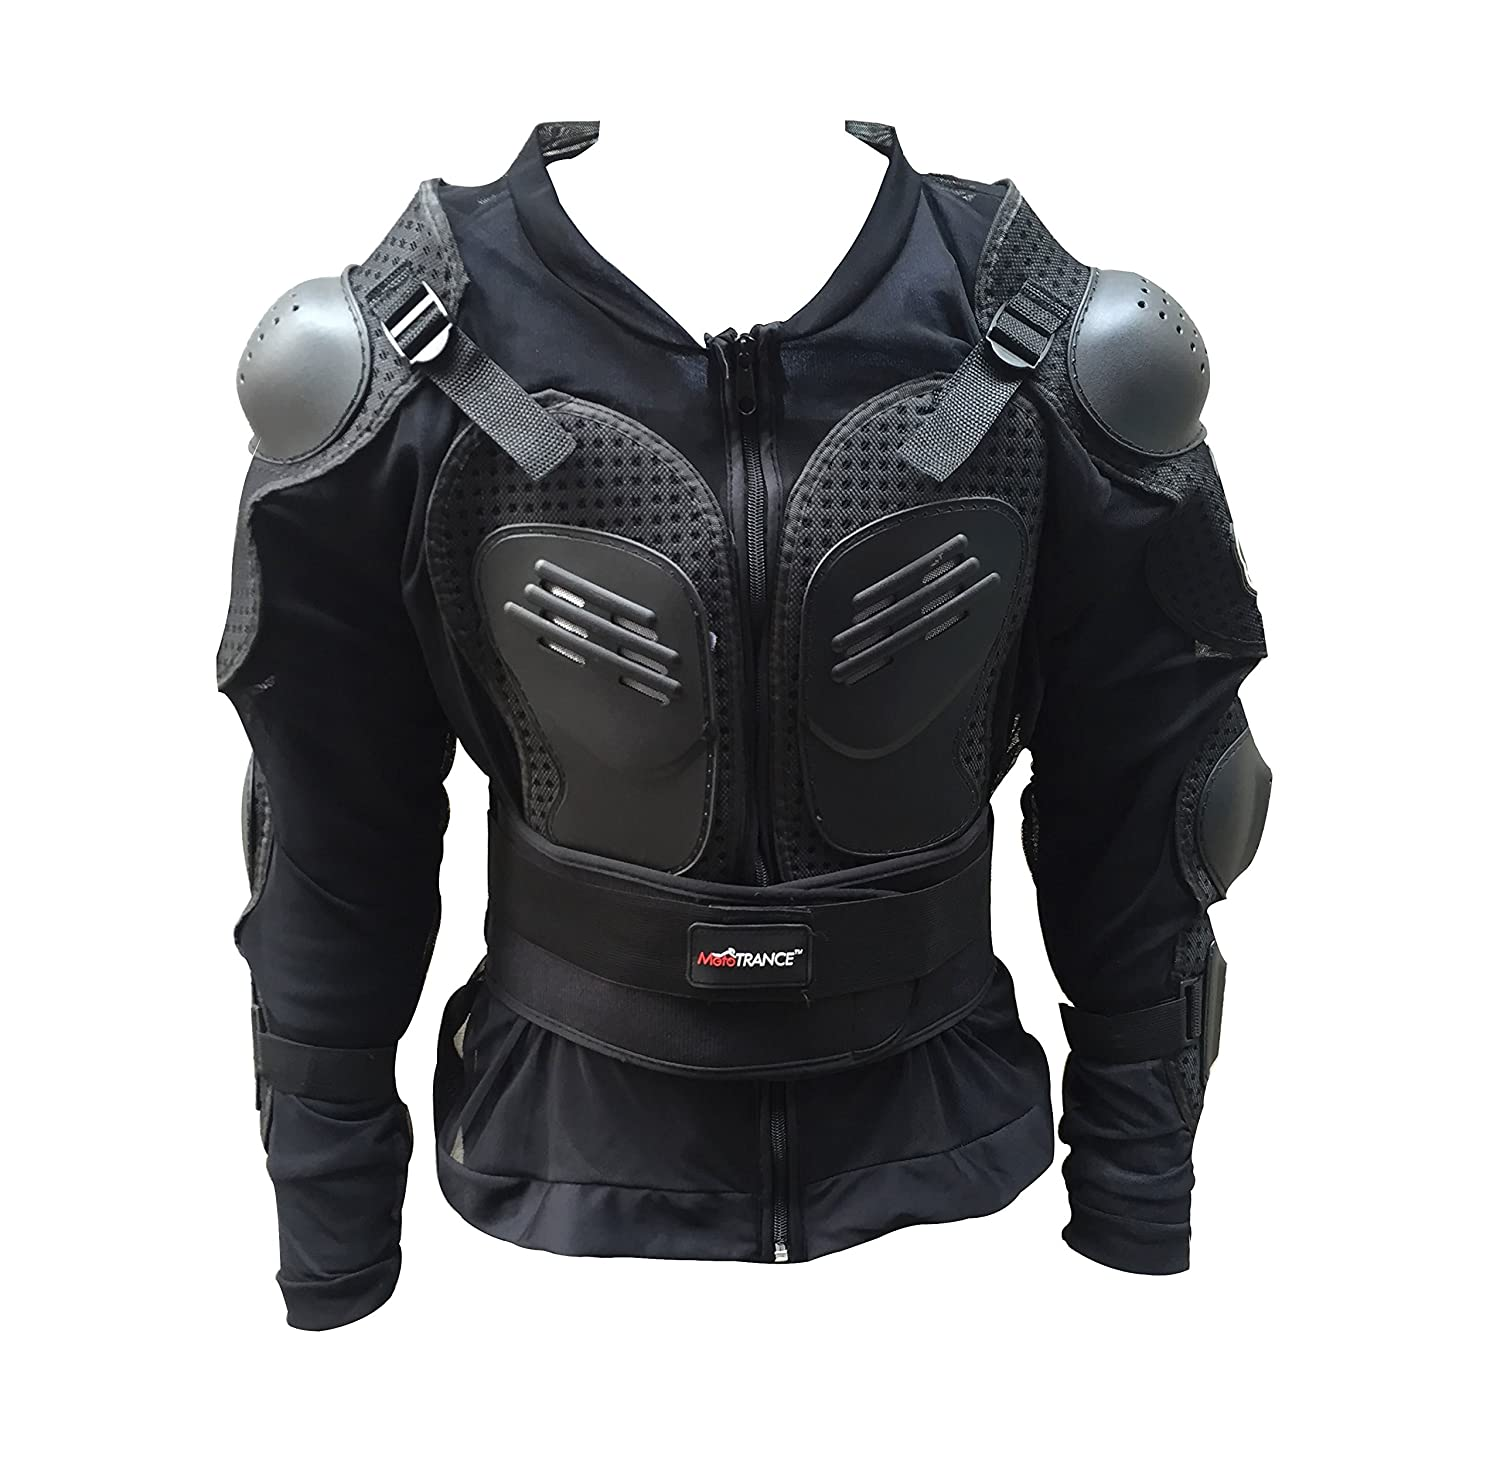 Motorcycle gloves bangalore - Mototrance Riding Gear Body Armor Jacket For Bike Driving